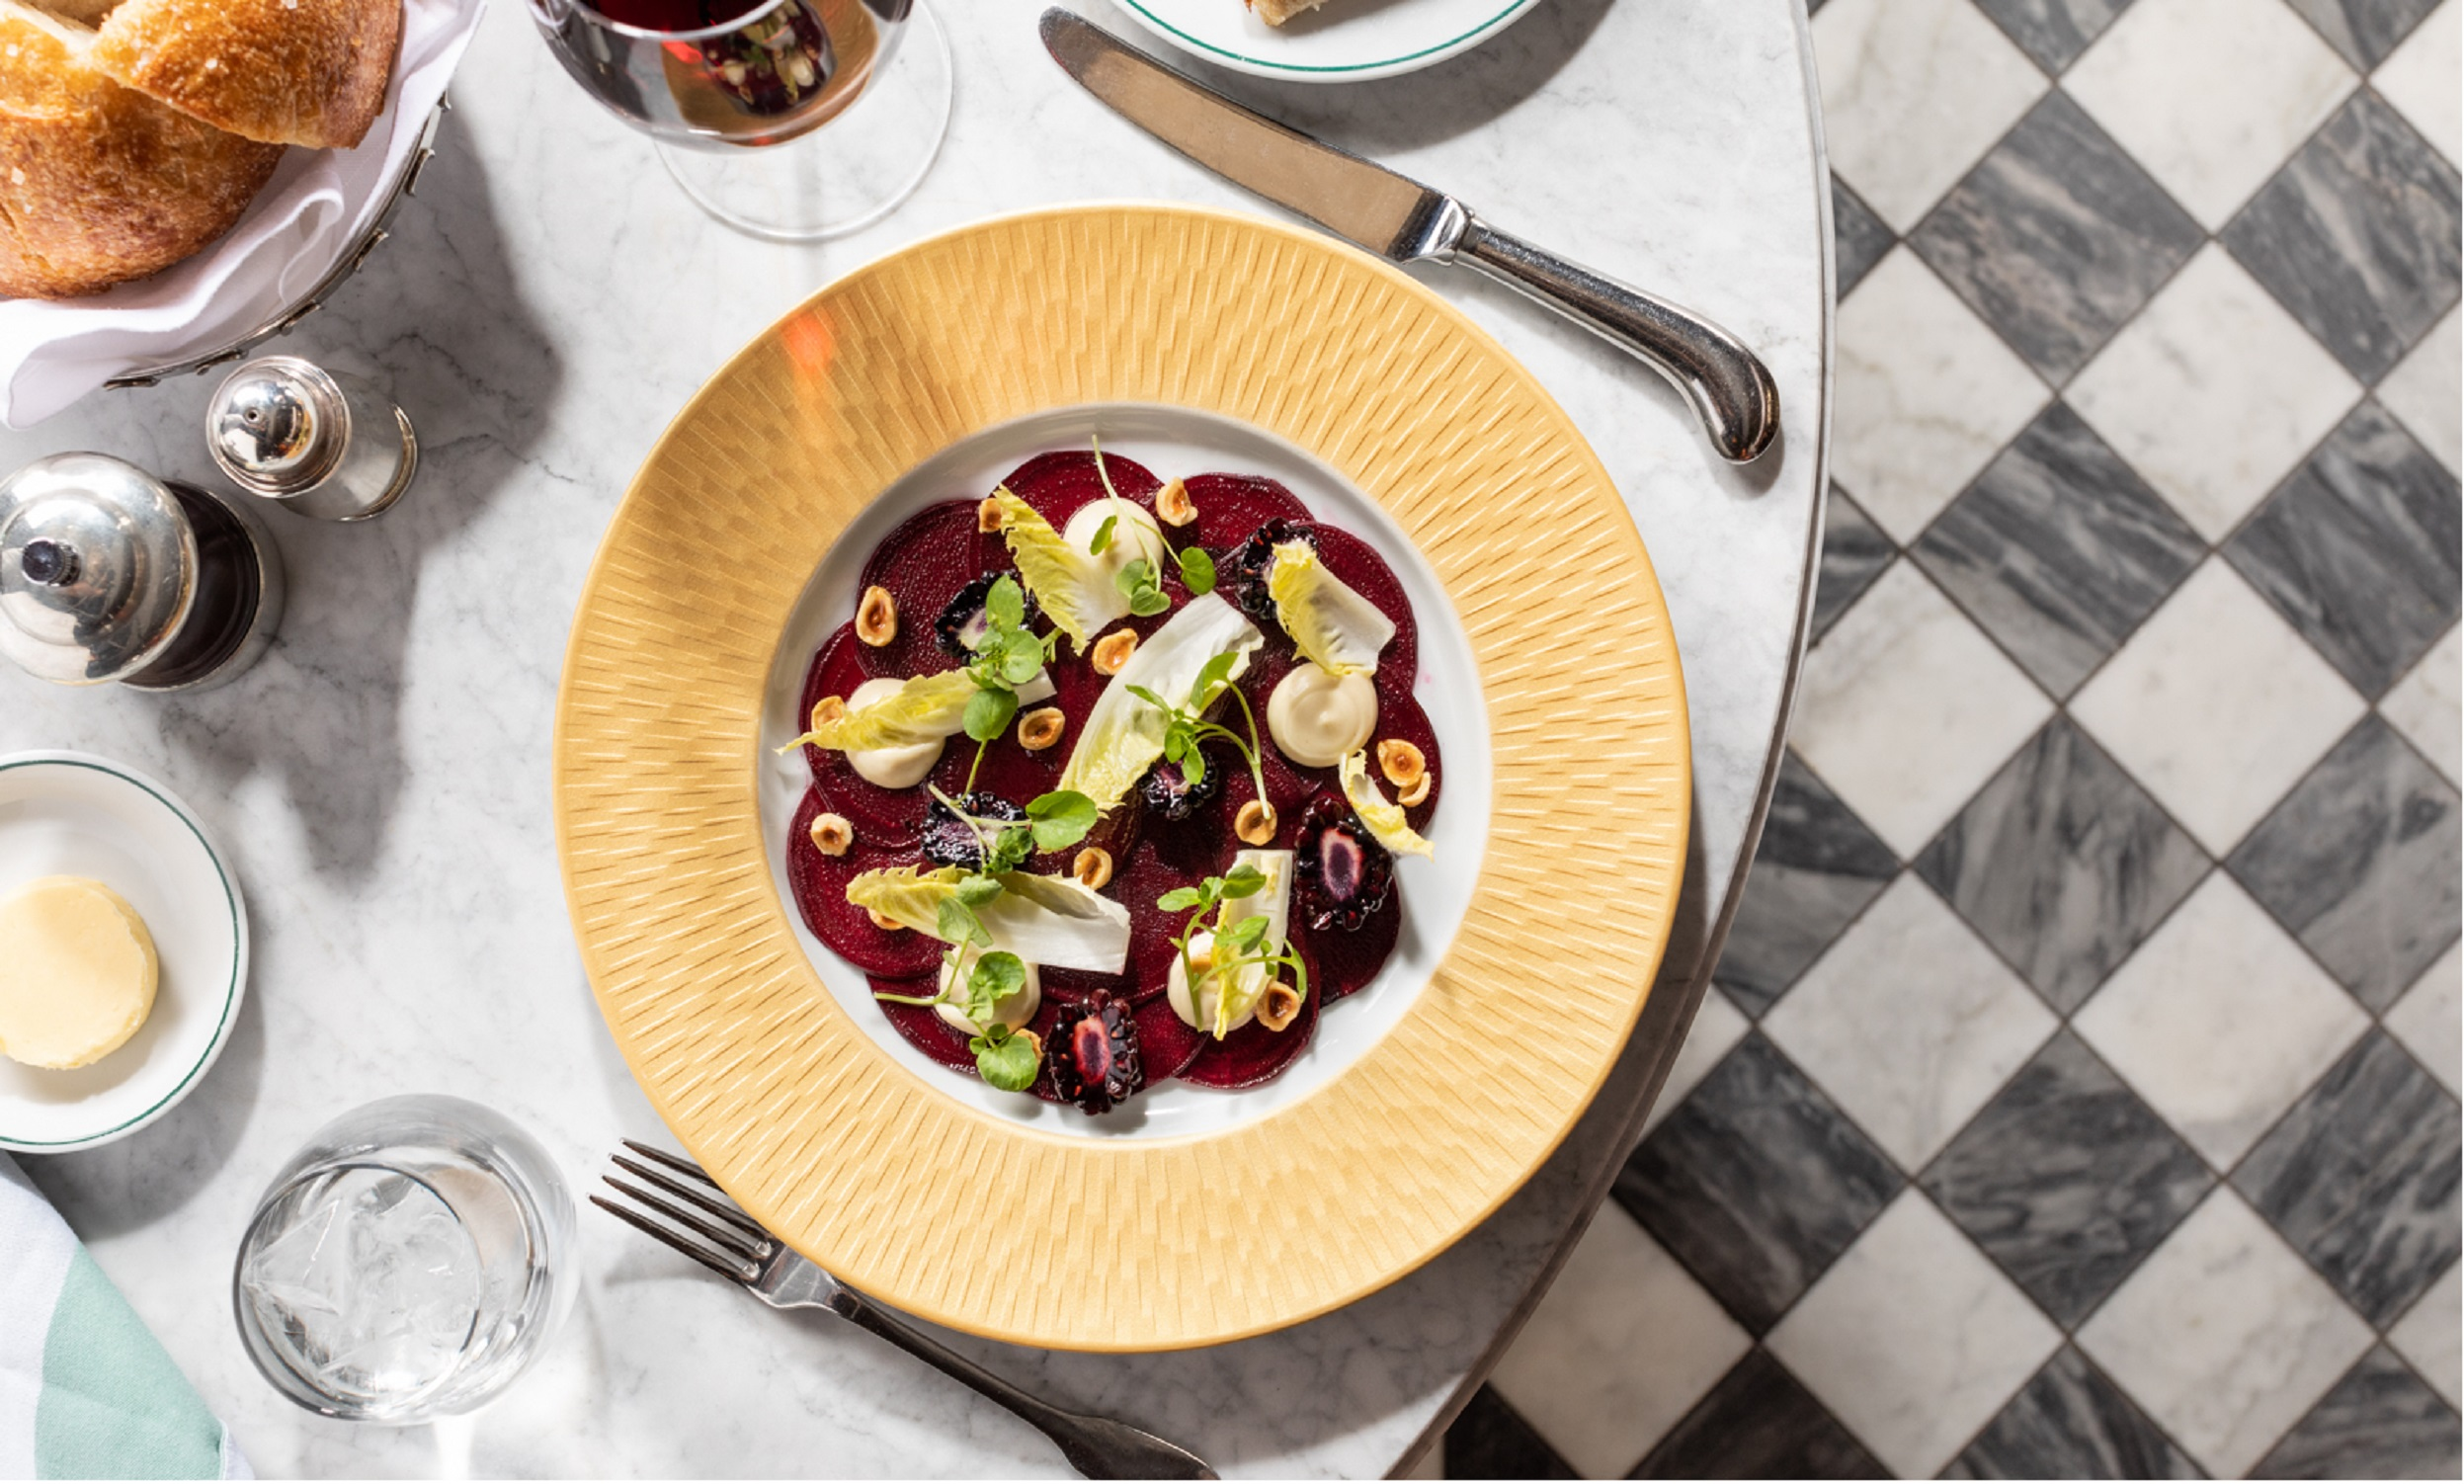 Fall in love with The Ivy again as the new Autumn menu drops